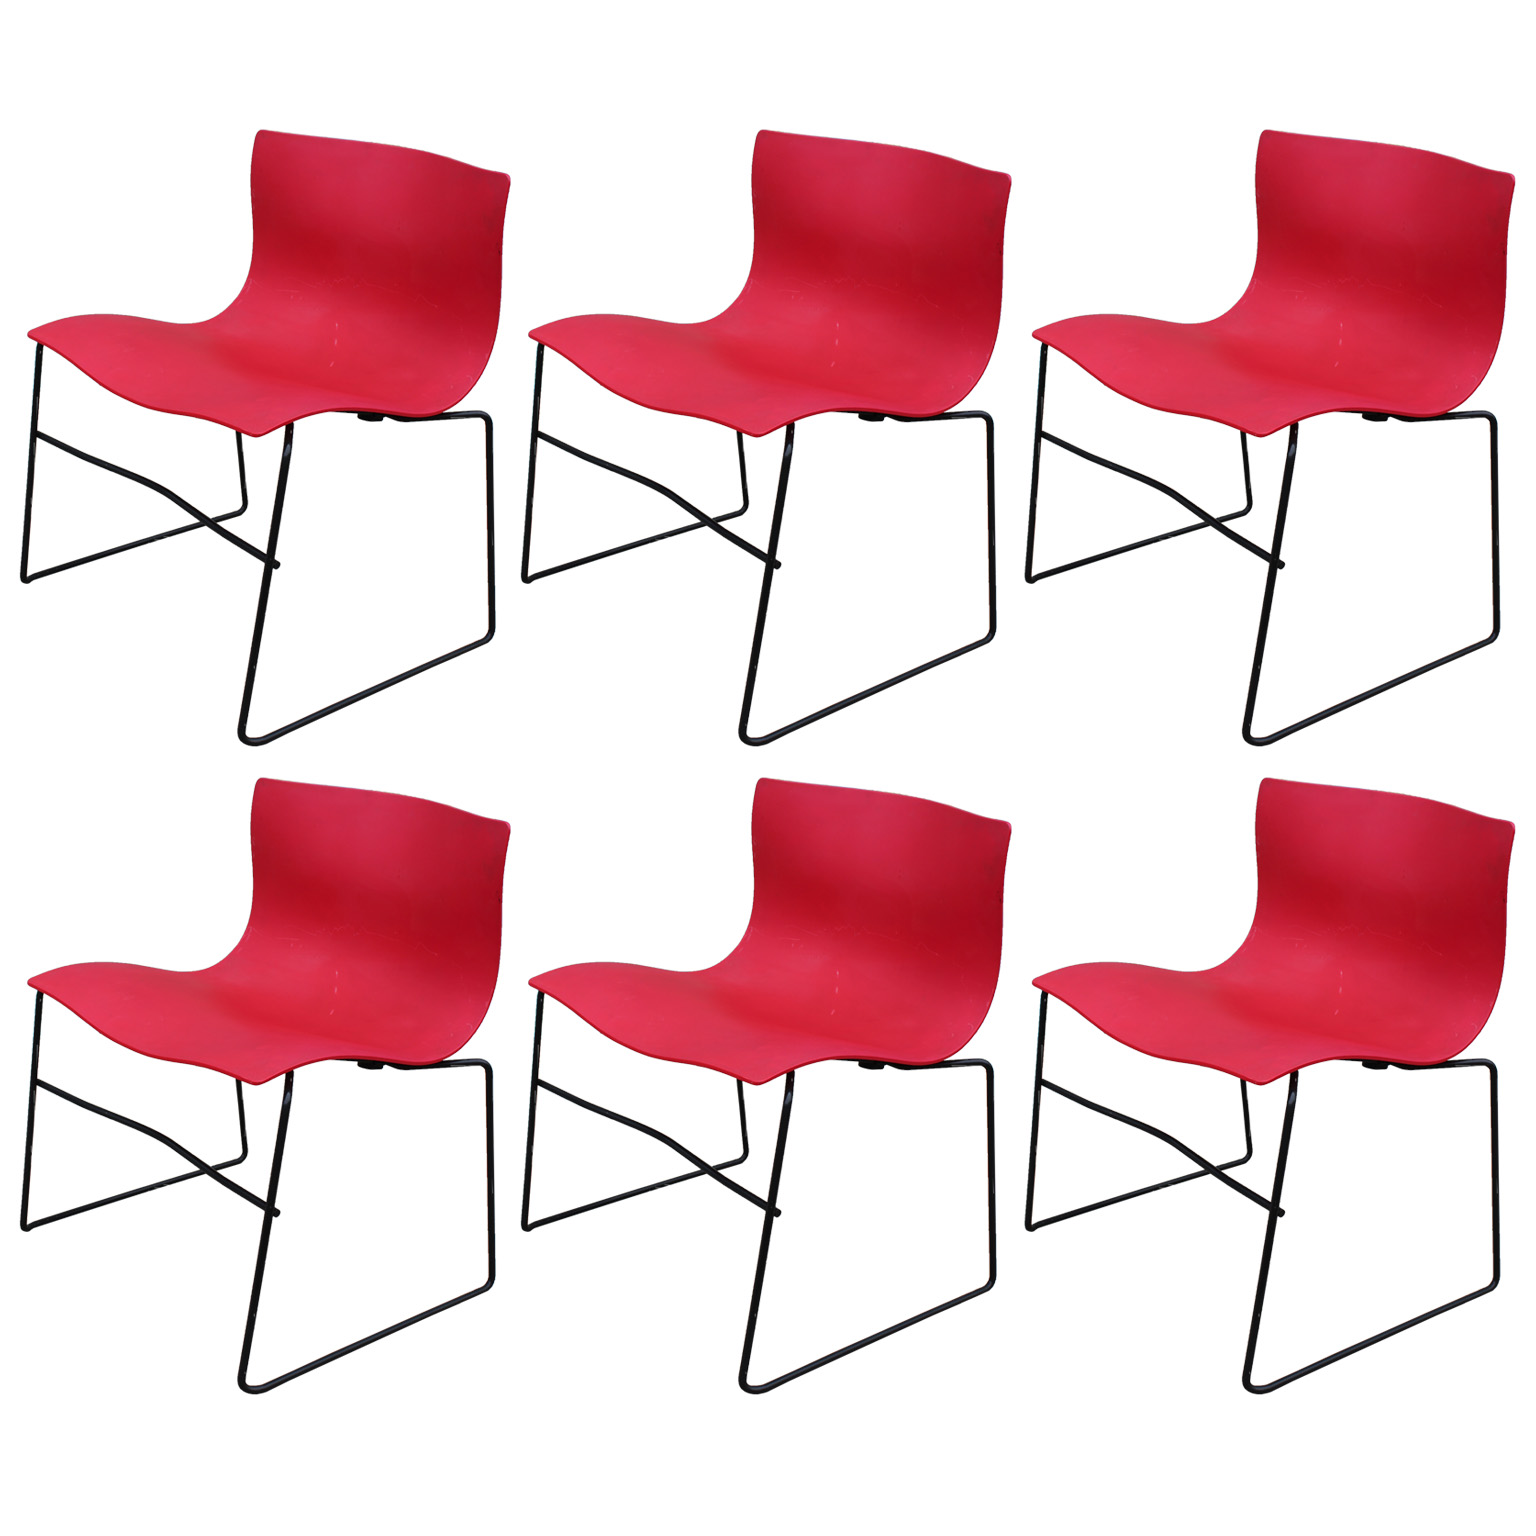 Set Of 6 Red Knoll Handkerchief Chairs By Massimo Vignelli